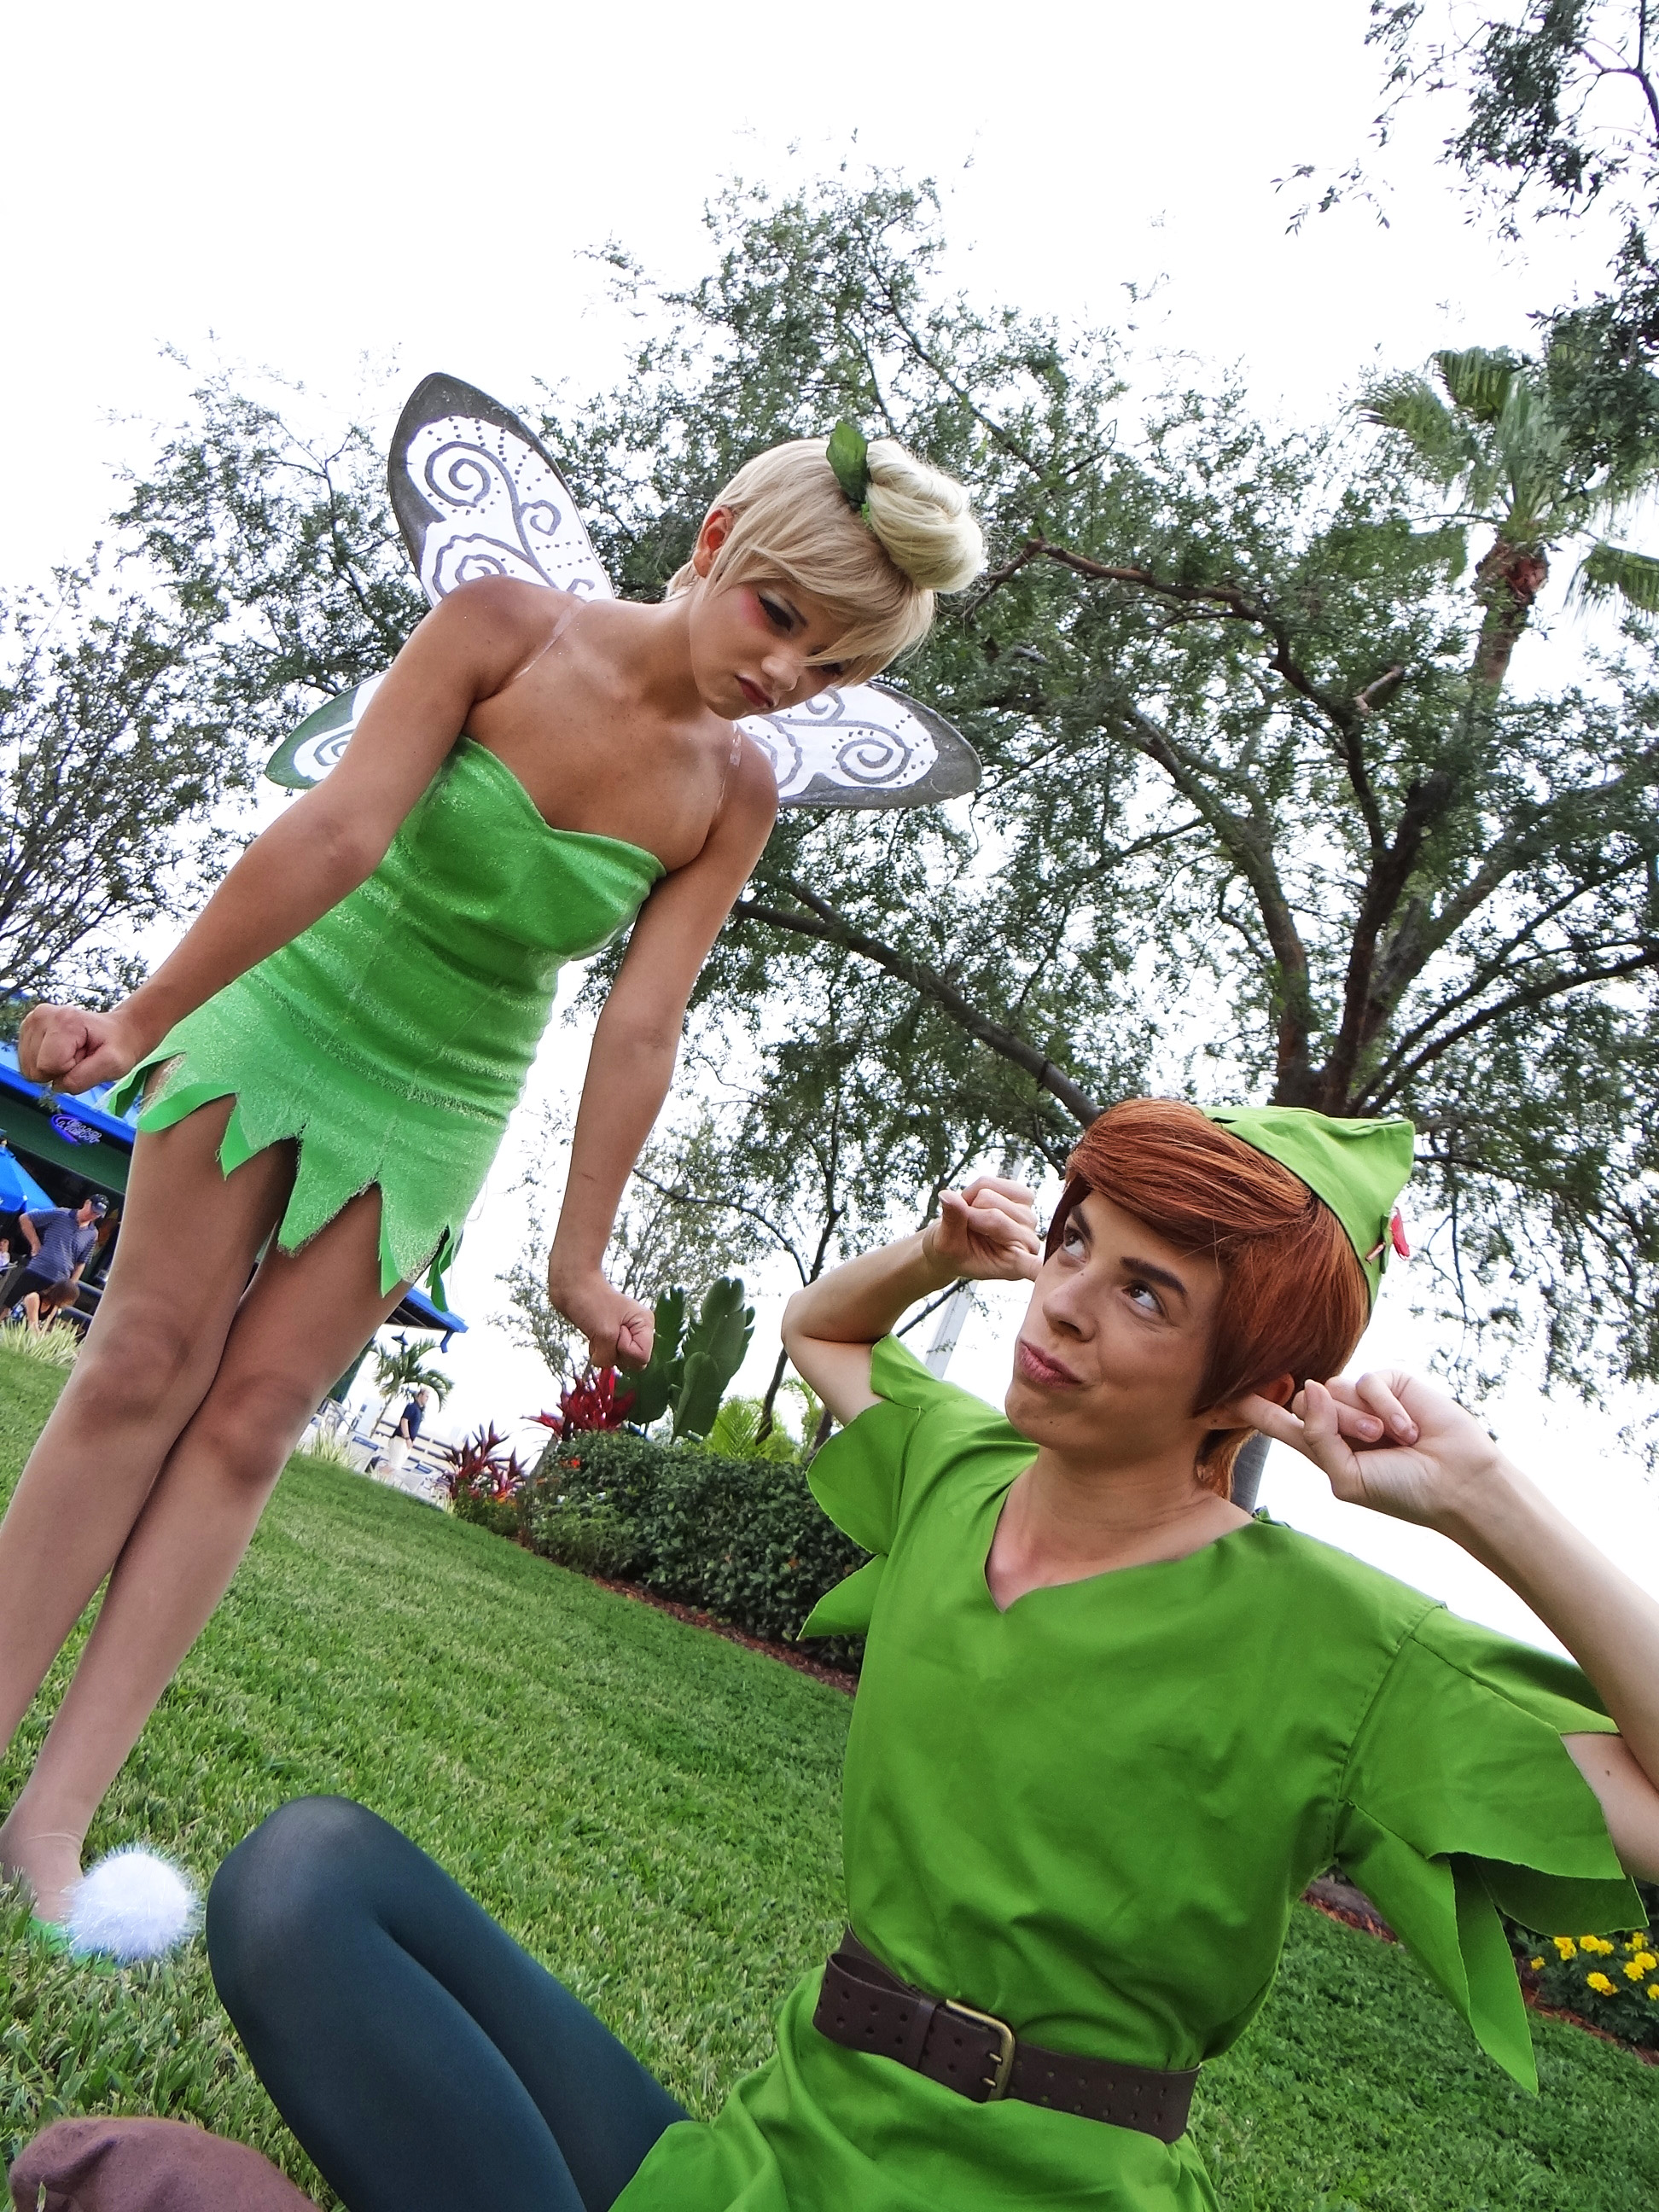 Peter Pan by theycriedwolf and Tinkerbell by Yanii Linda